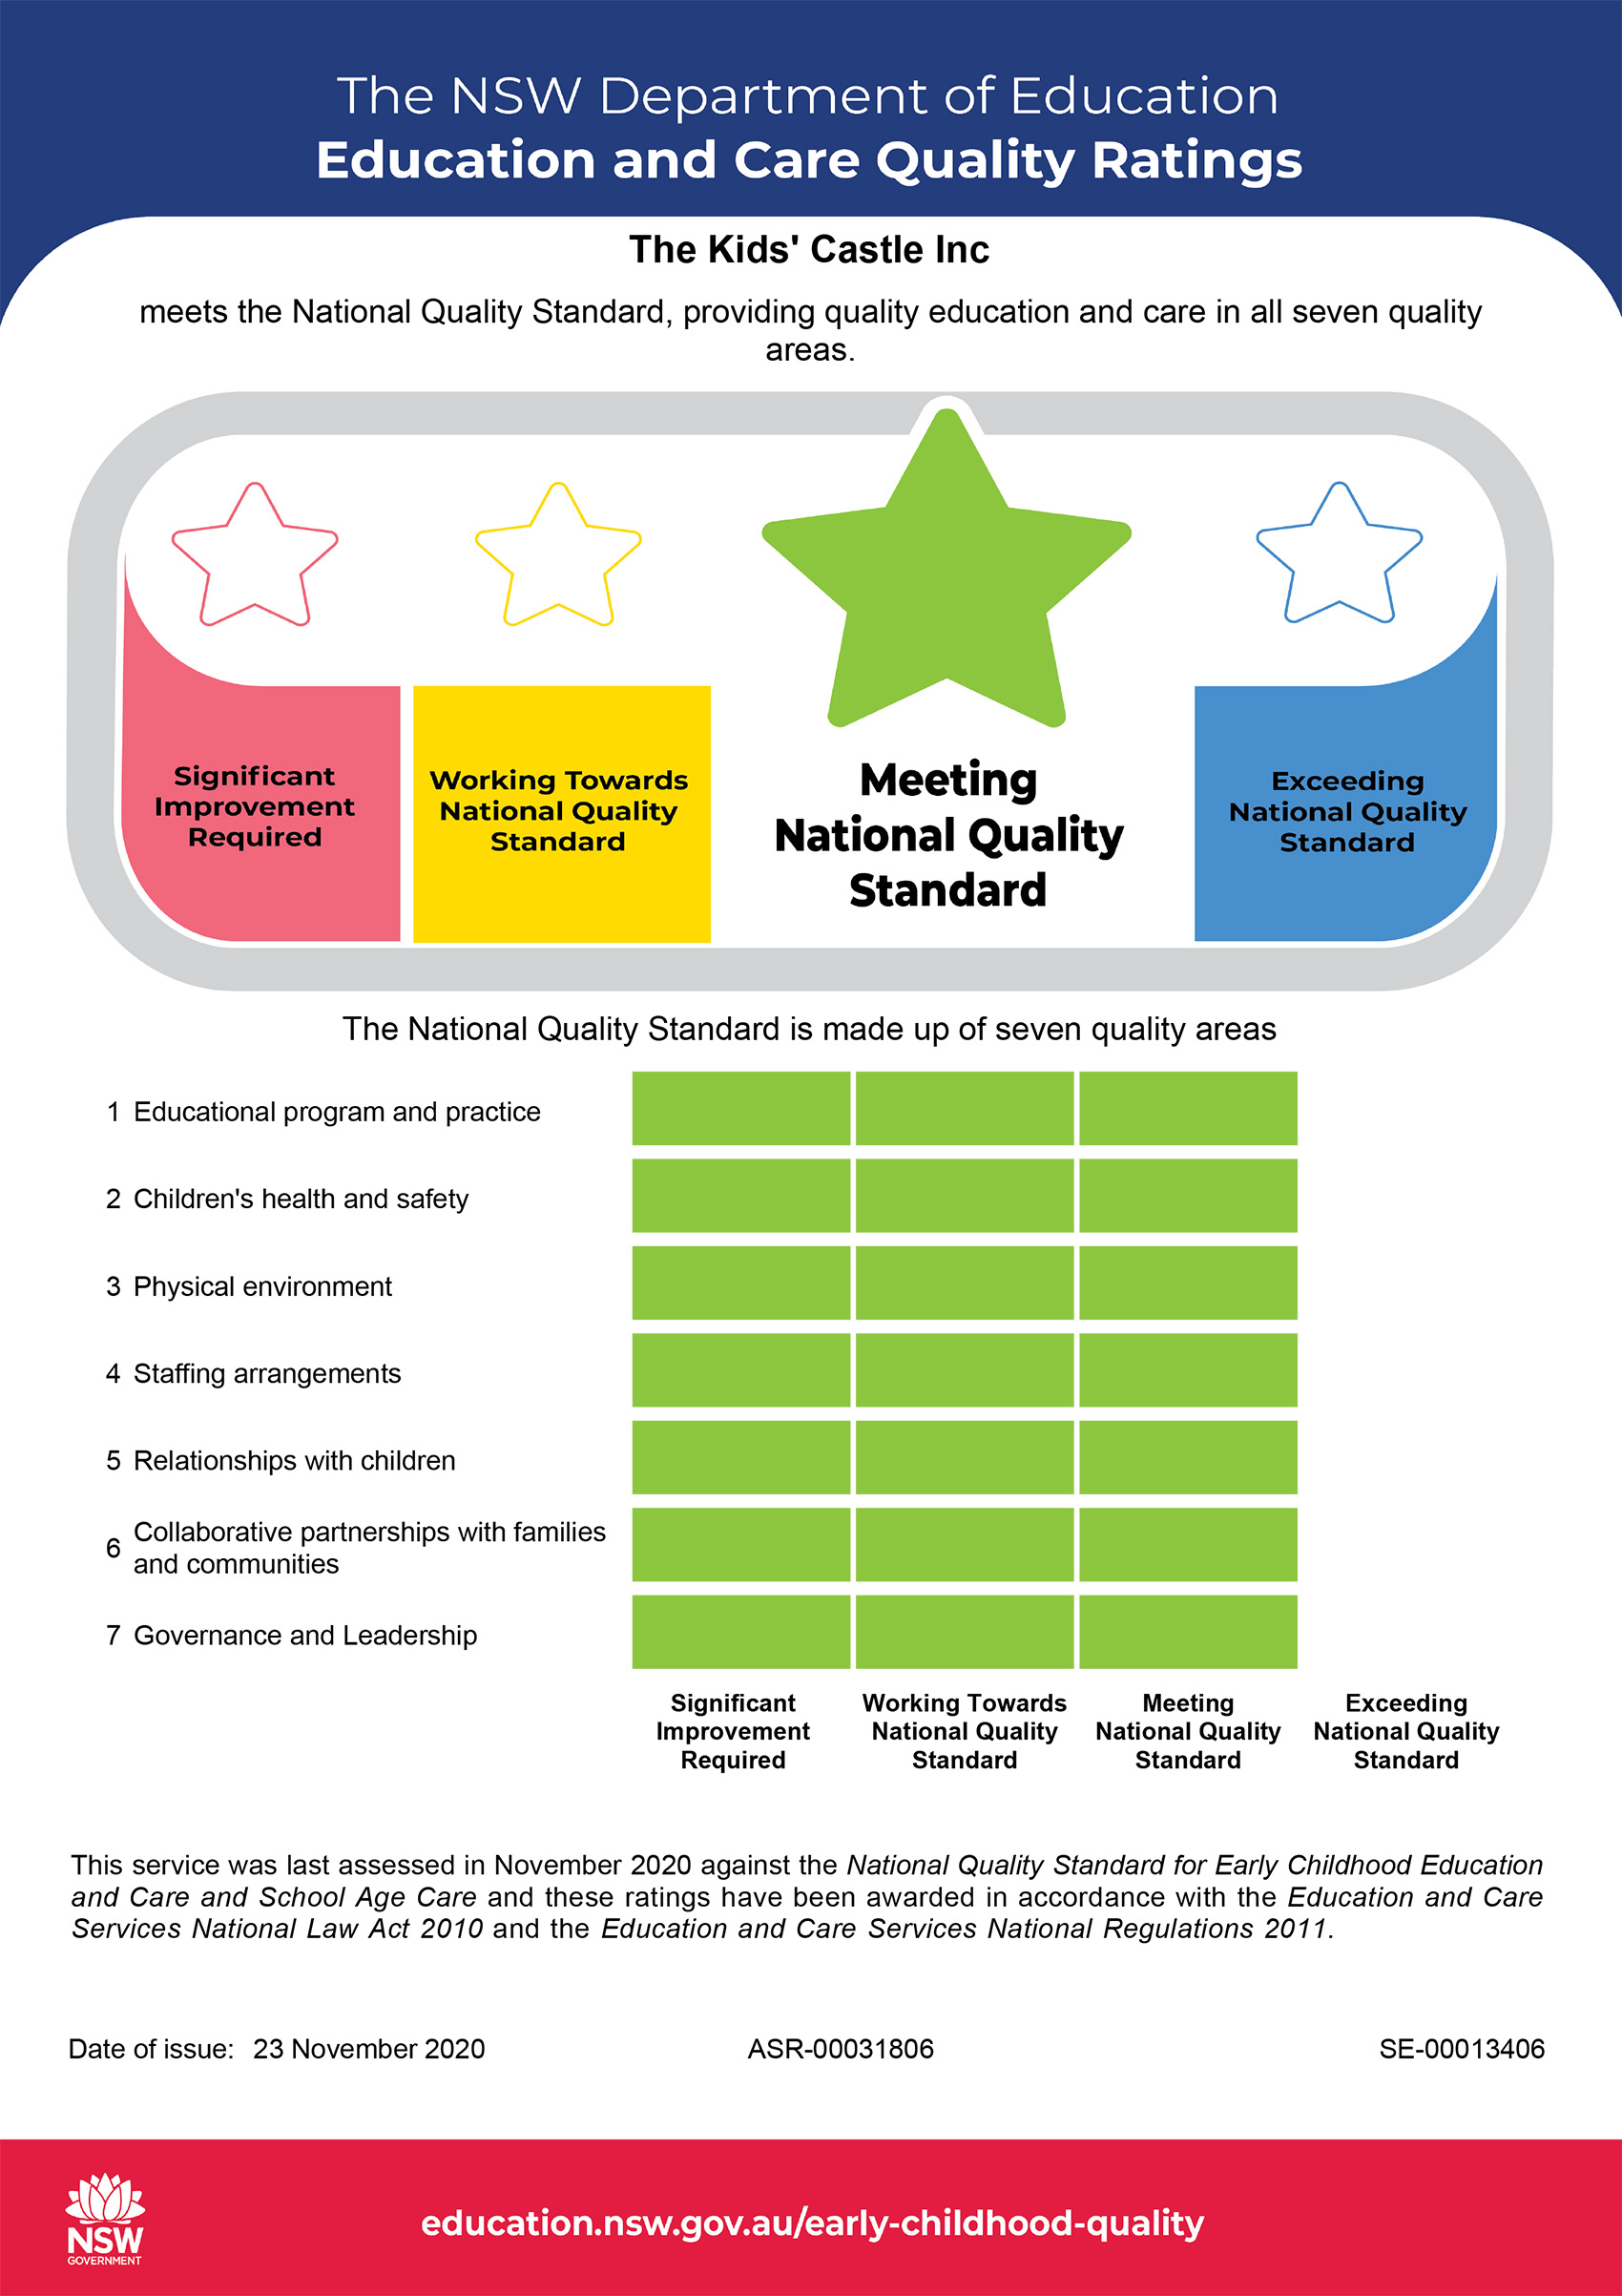 TKC wer recently found to be achieving the National Quality Standard